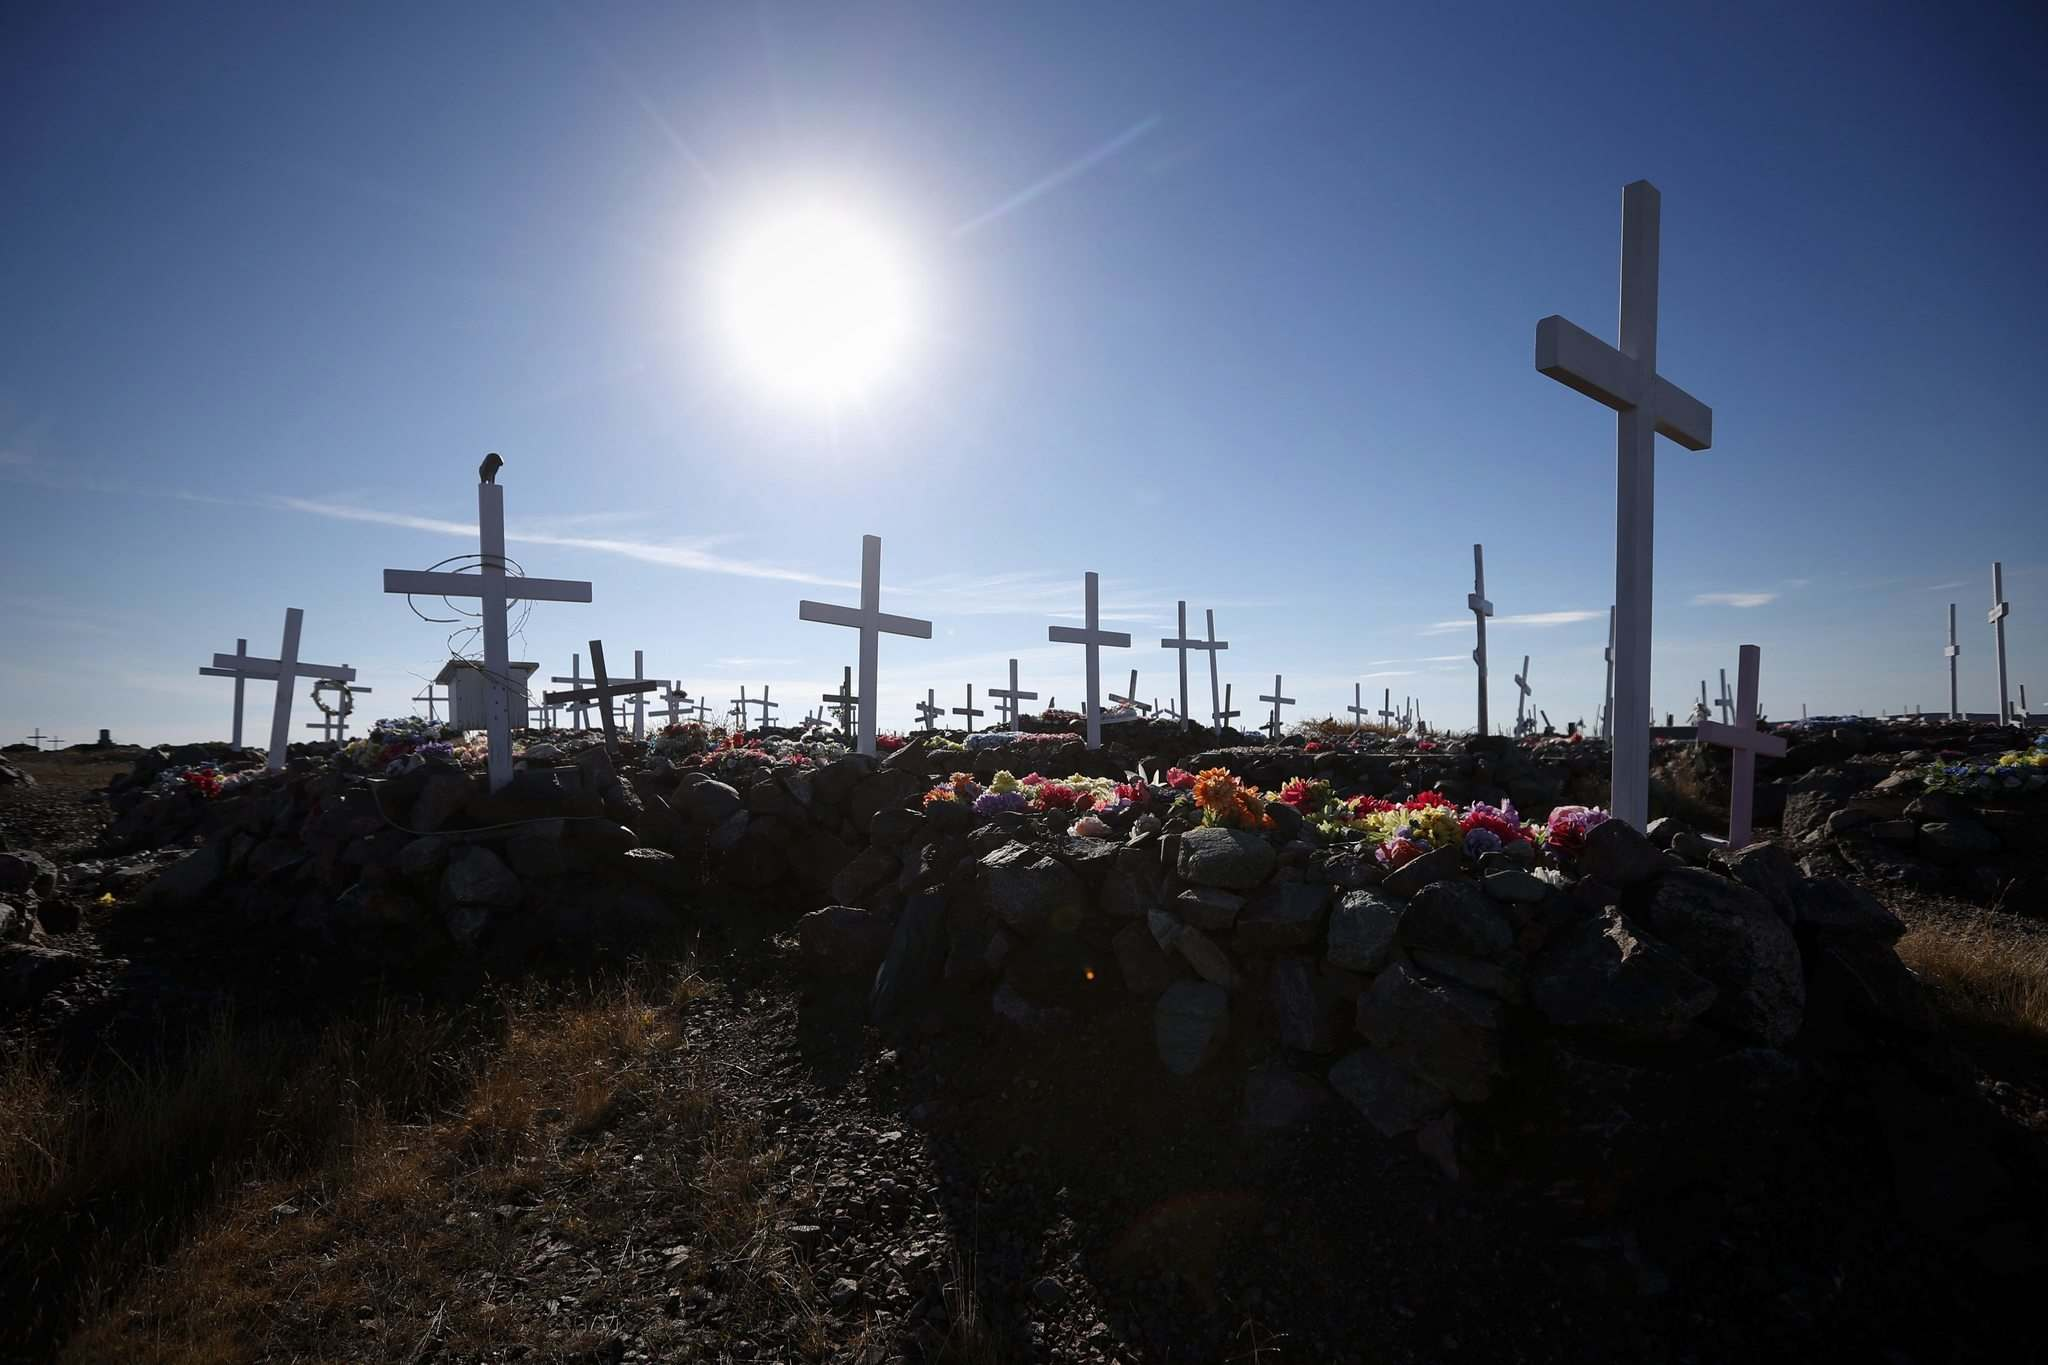 JOHN WOODS / WINNIPEG FREE PRESS</p><p>Because of the permafrost, gravesites in Baker Lake&rsquo;s cemetery are above ground, and the rocks and wooden boxes don&rsquo;t always conceal the departed forever.</p>